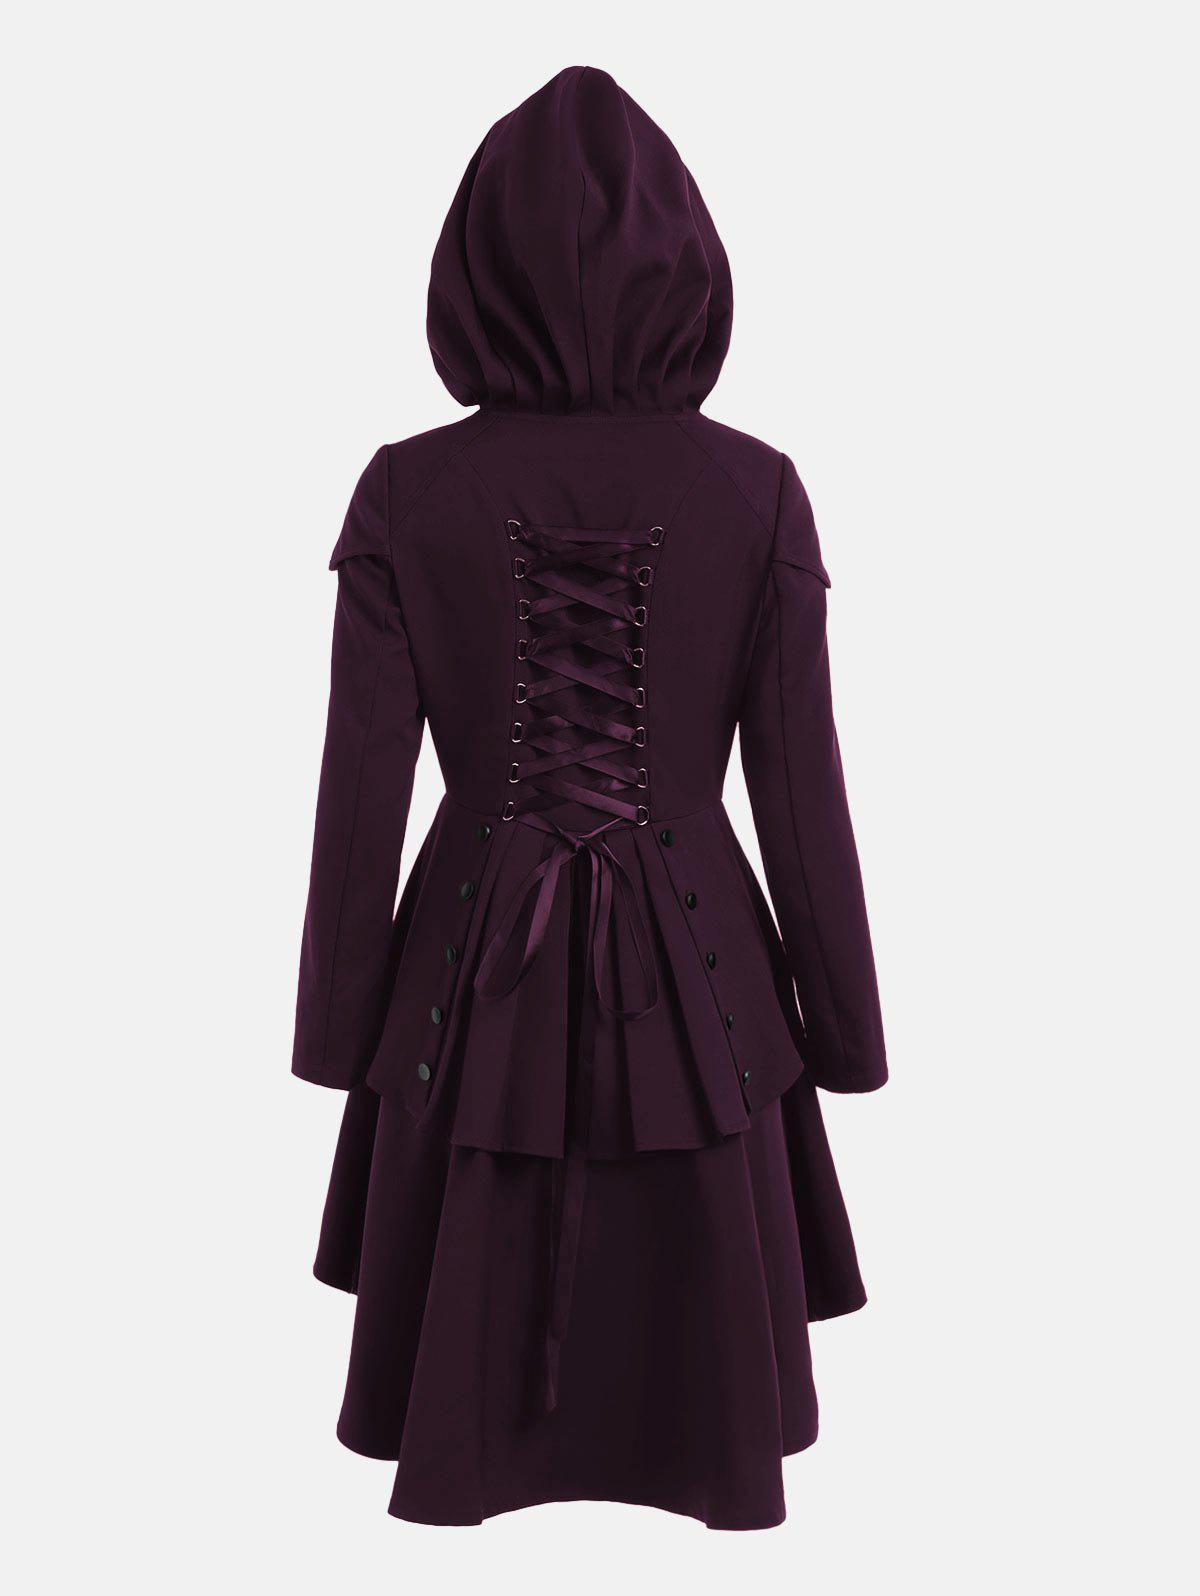 Lace Up Layered High Low Hooded CoatWOMEN<br><br>Size: L; Color: DEEP PURPLE; Clothes Type: Others; Material: Polyester; Type: High Waist; Shirt Length: Long; Sleeve Length: Full; Collar: Hooded; Closure Type: Single Breasted; Pattern Type: Solid; Embellishment: Criss-Cross; Style: Gothic; Season: Fall,Spring; With Belt: No; Weight: 0.6600kg; Package Contents: 1 x Coat;